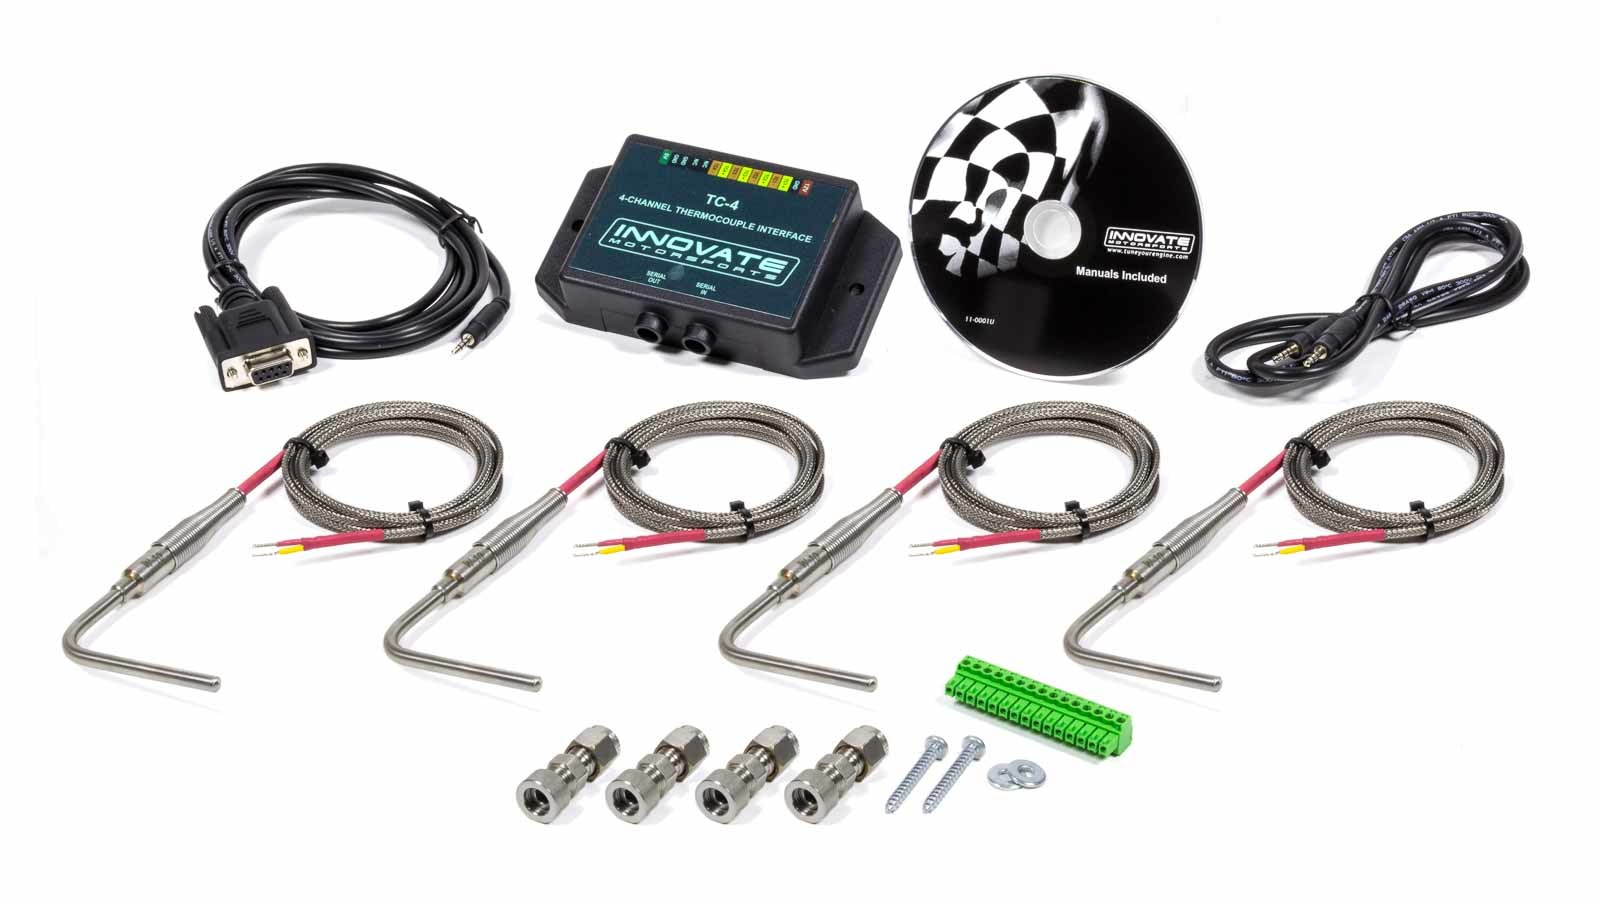 Innovate Motorsports 3895 Data Logger Thermocouple Amplifier Interface, TC-4, 4 Channel, 4 Type-K EGT Probes / Fittings Included, Innovate LM-1/2 or MTS Components, Kit